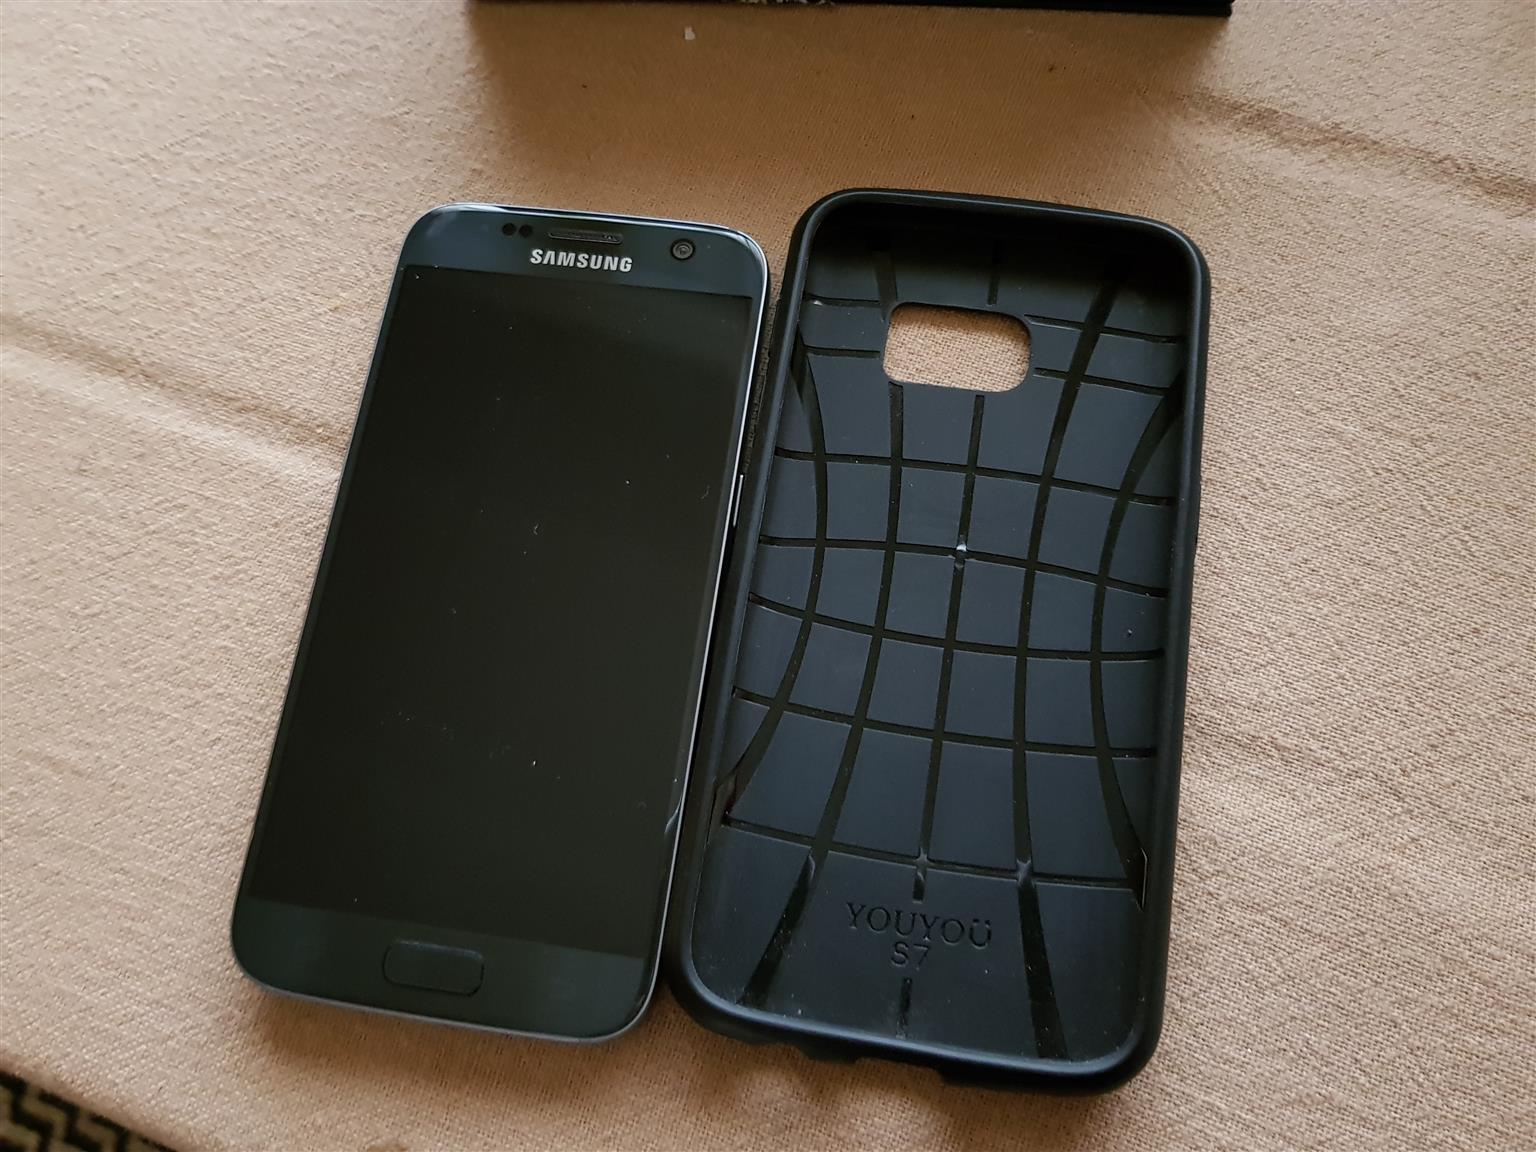 Samsung S7 with VR goggles